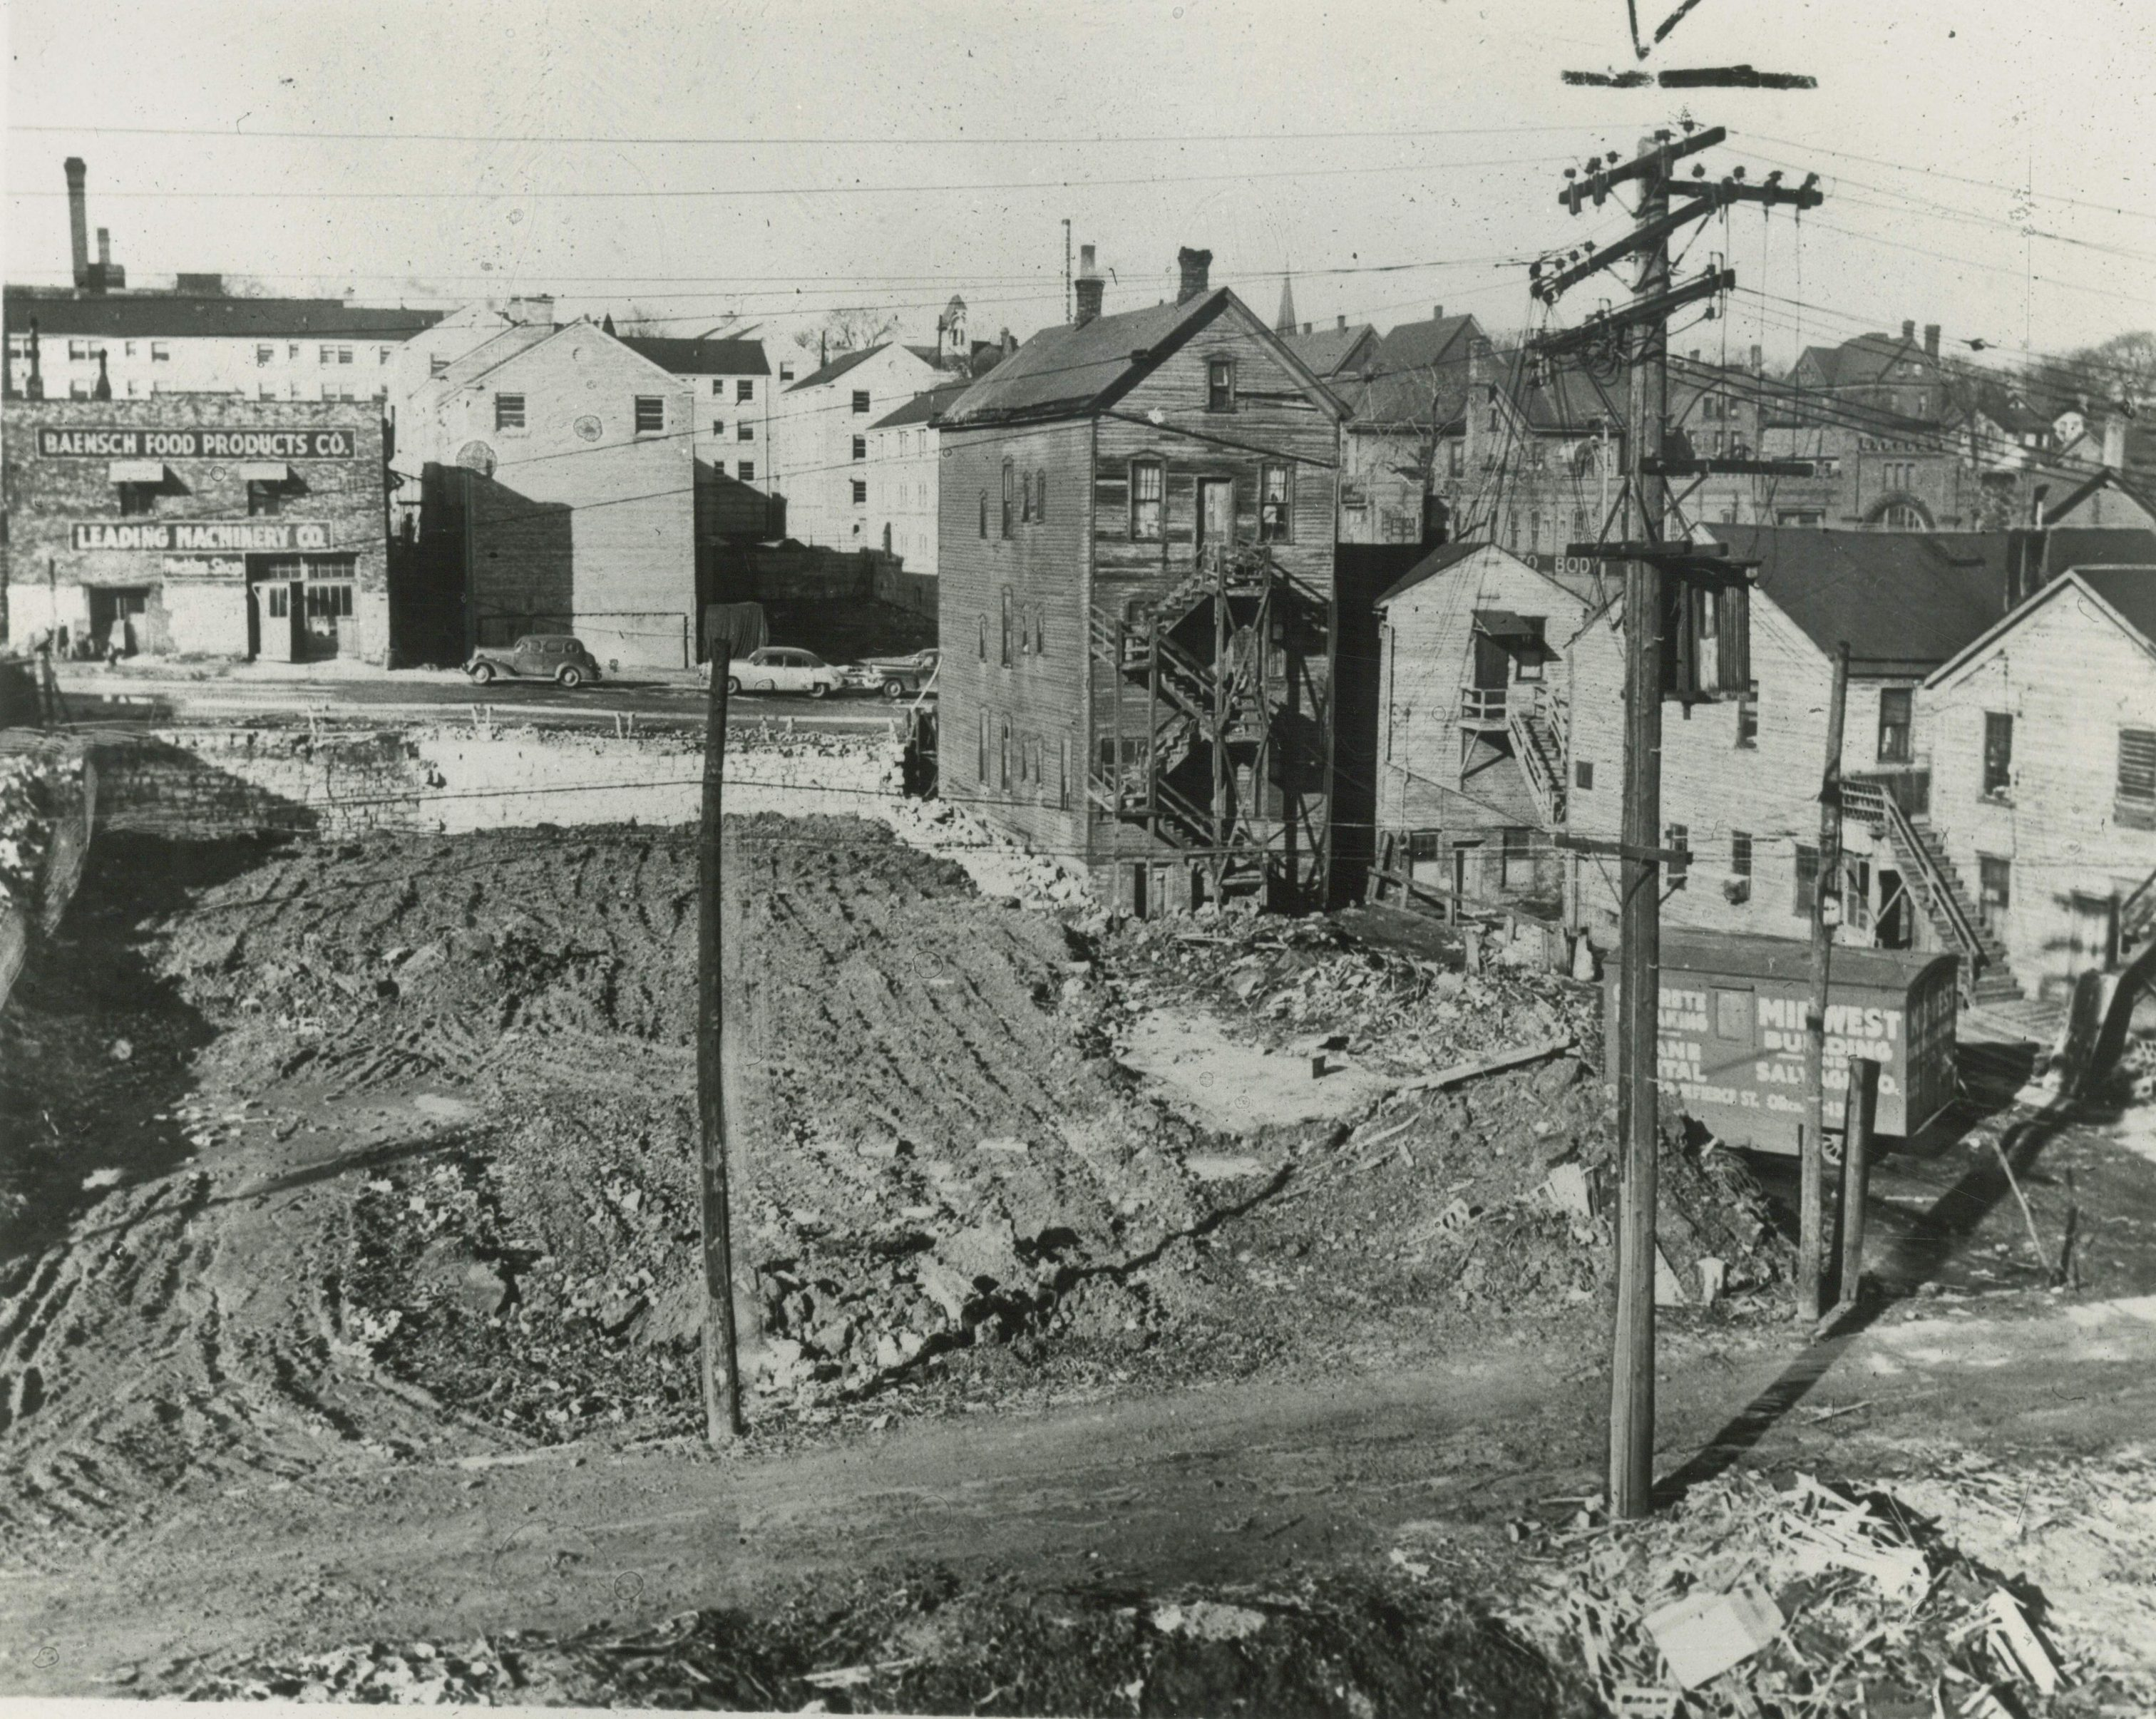 Photograph of an demolished lot and other housing structures on W. Fond Du Lac Avenue that were eventually torn down and replaced by the Hillside Housing Development.